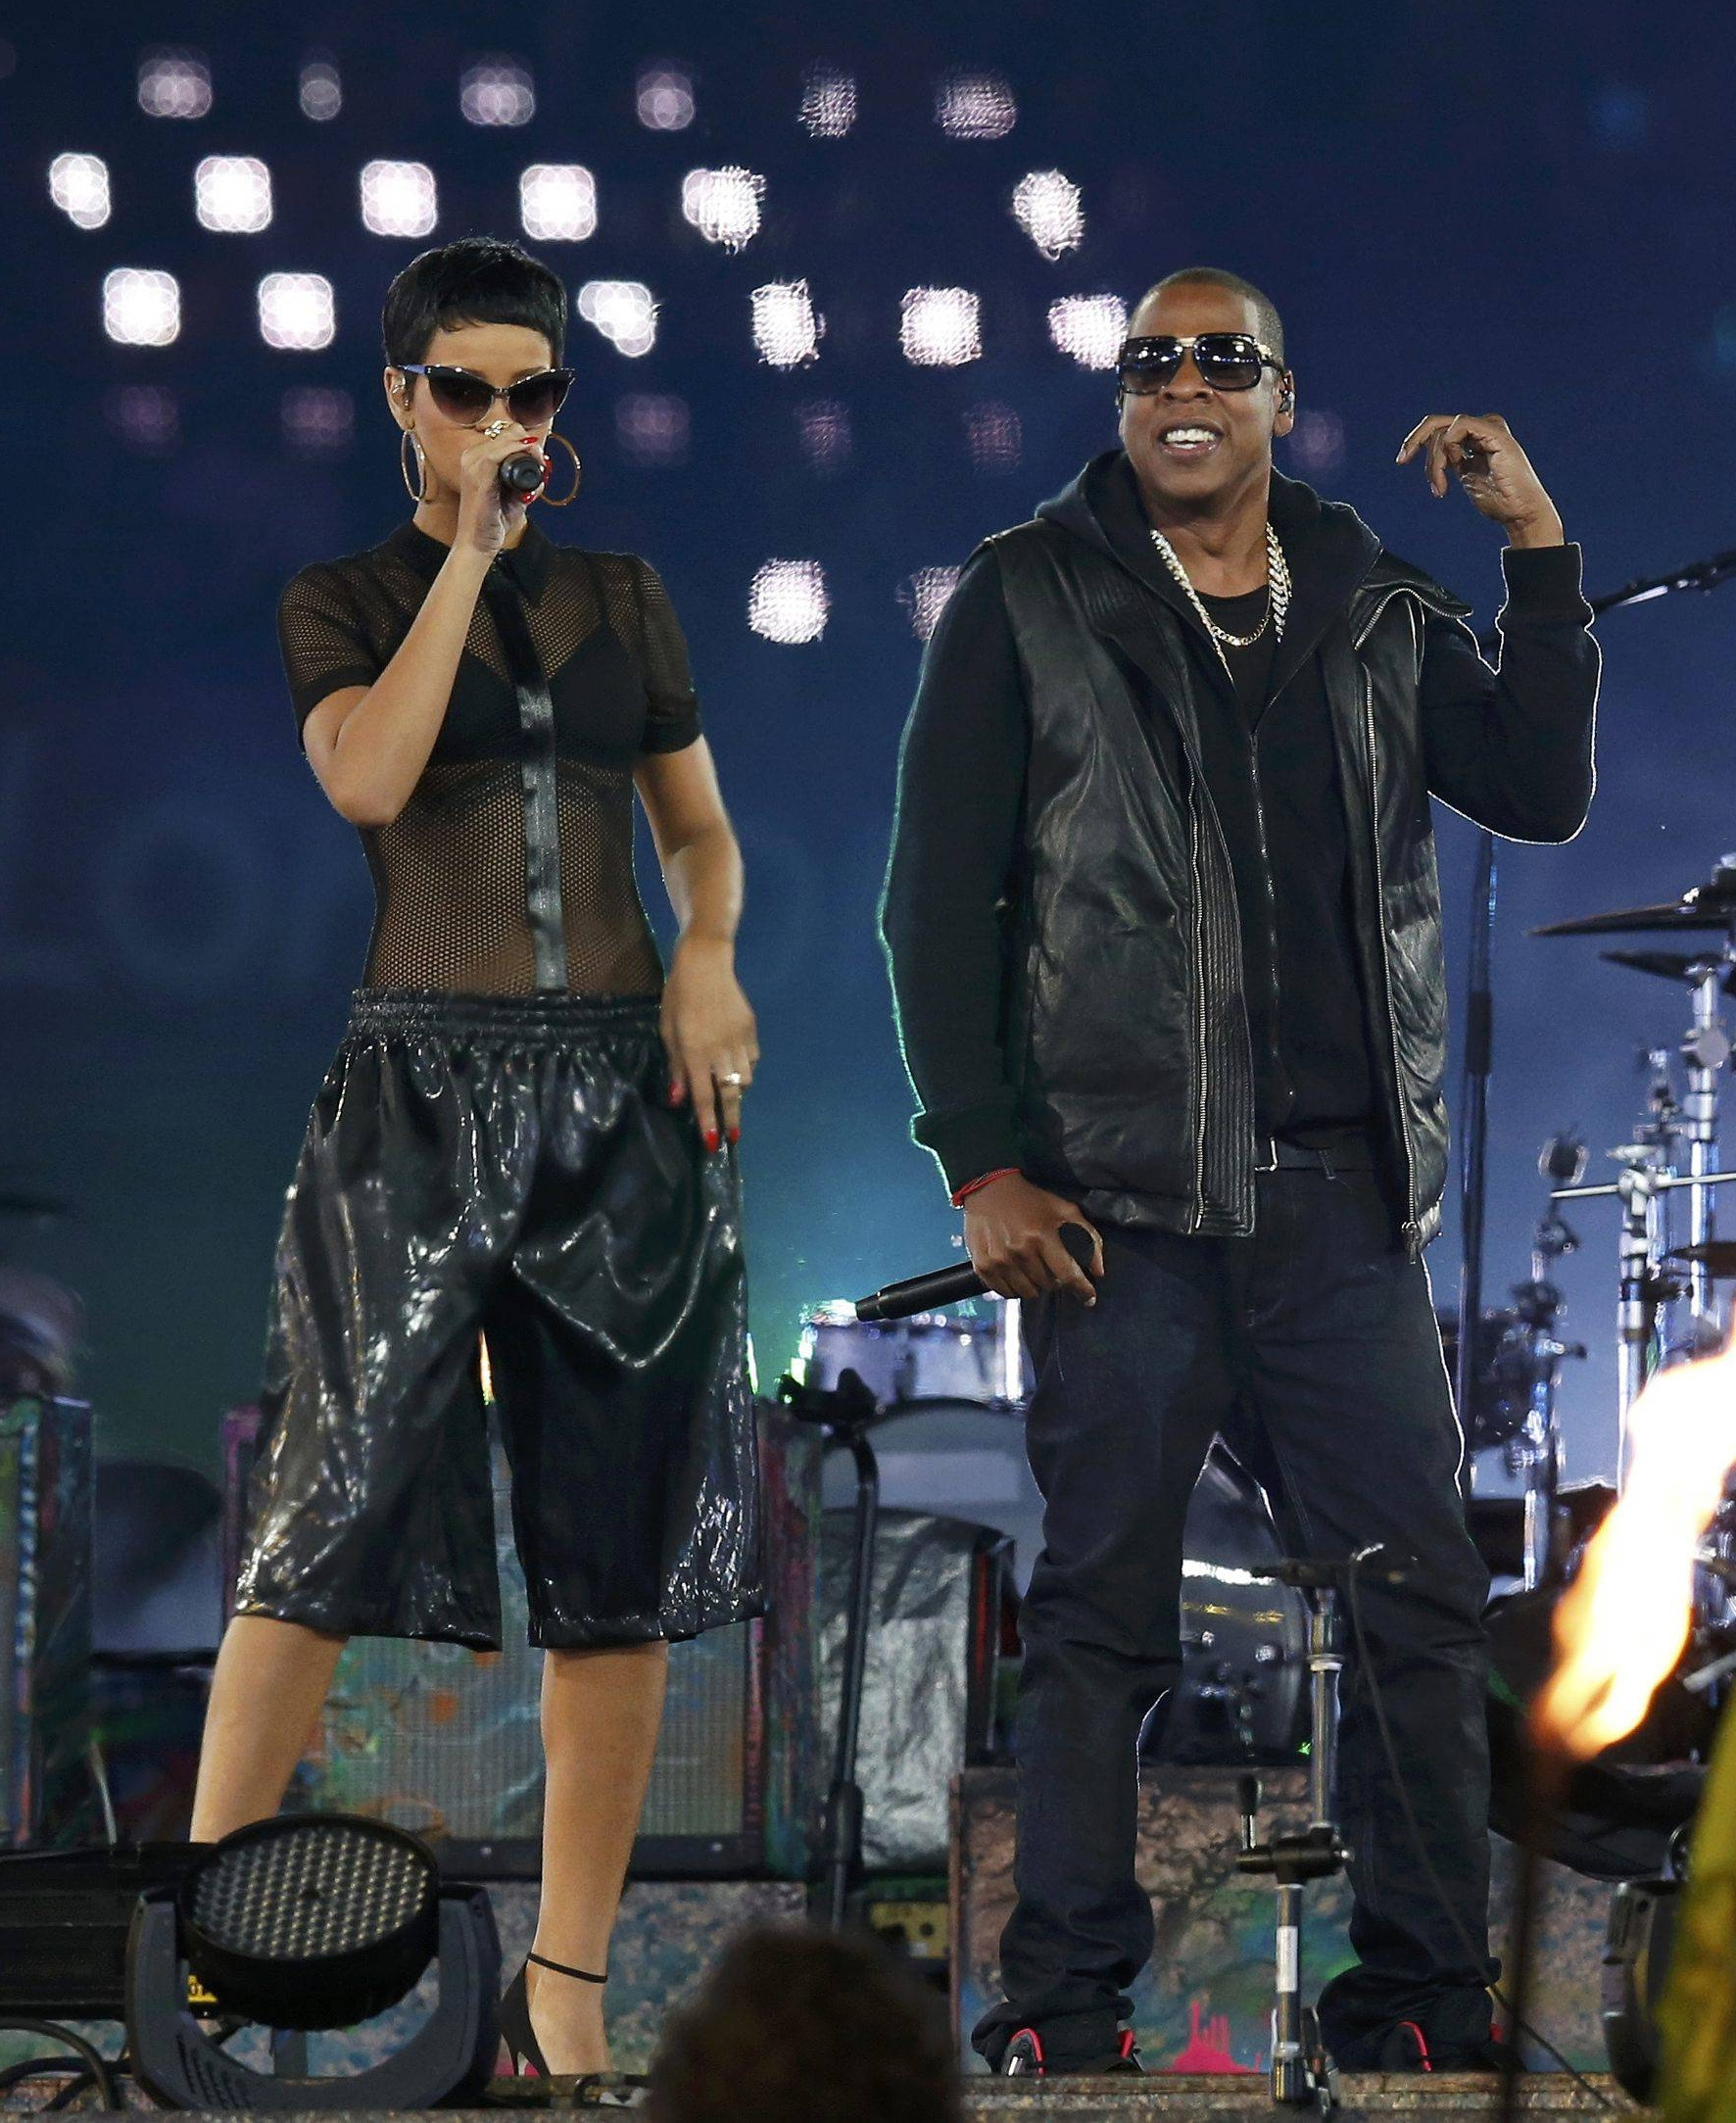 Singer Rihanna  and rapper Jay Z (R)  perform in the Olympic Stadium during the closing ceremony of the London 2012 Paralympic Games September 9, 2012.            REUTERS/Suzanne Plunkett (BRITAIN  - Tags: OLYMPICS SPORT ENTERTAINMENT)